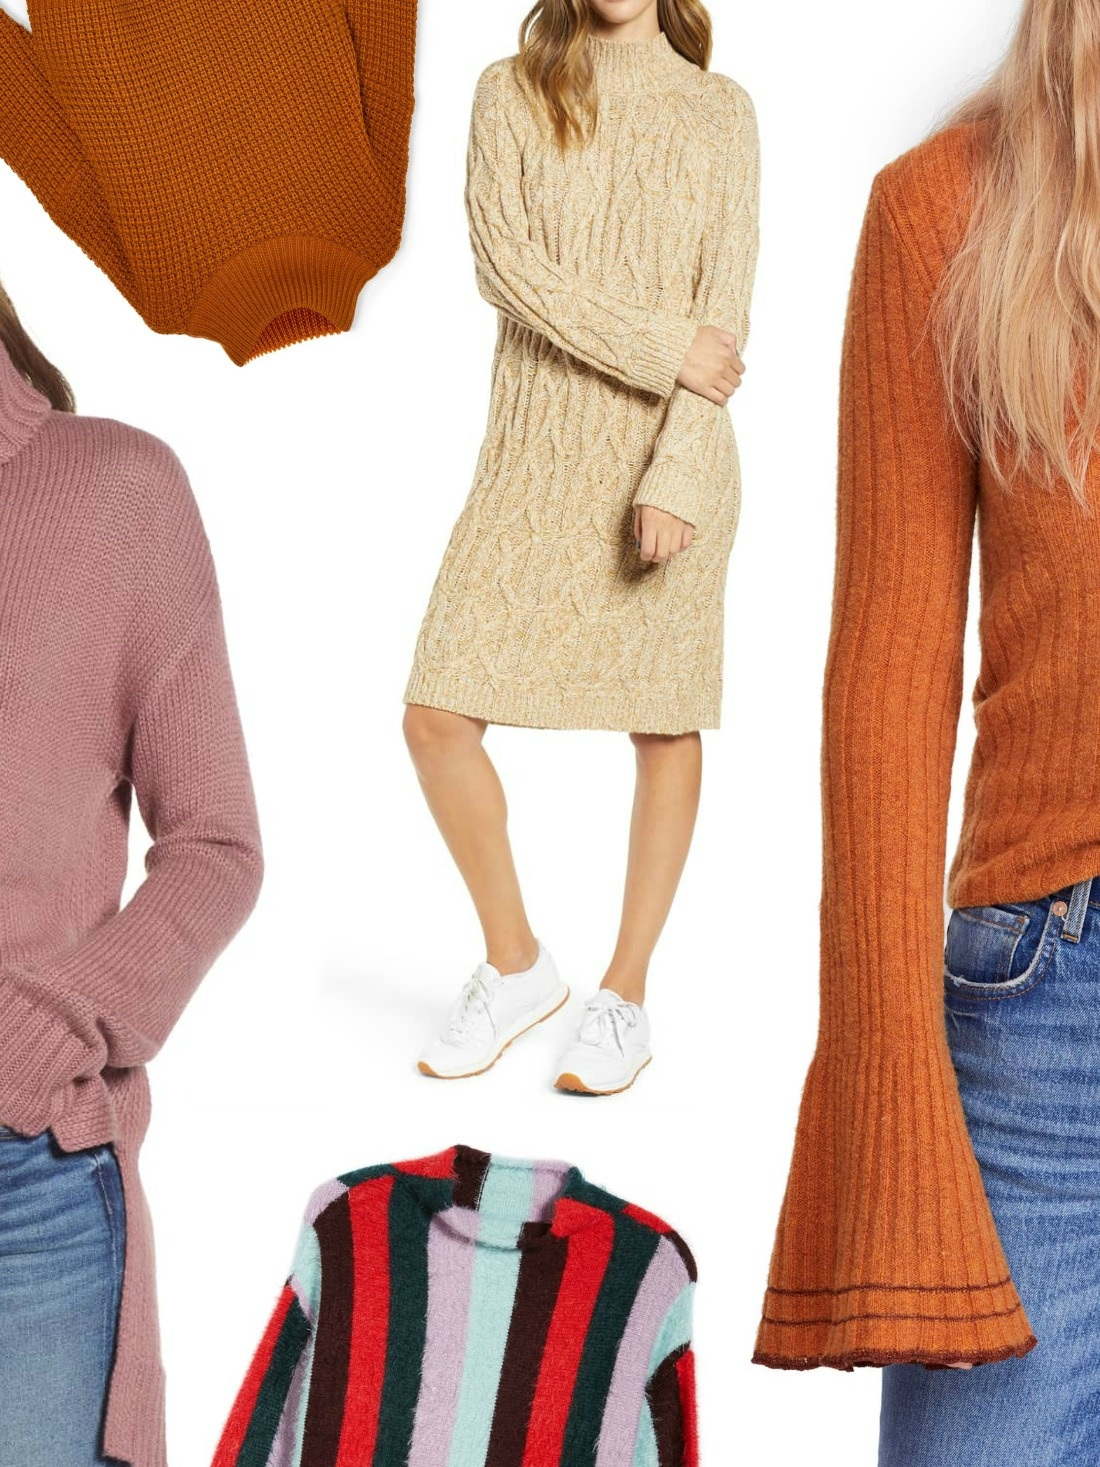 Do you want to look uniquely warm and comfy this season? Here are 10 styles of cozy sweaters for women to add to your fall and winter wardrobe. Take a look!